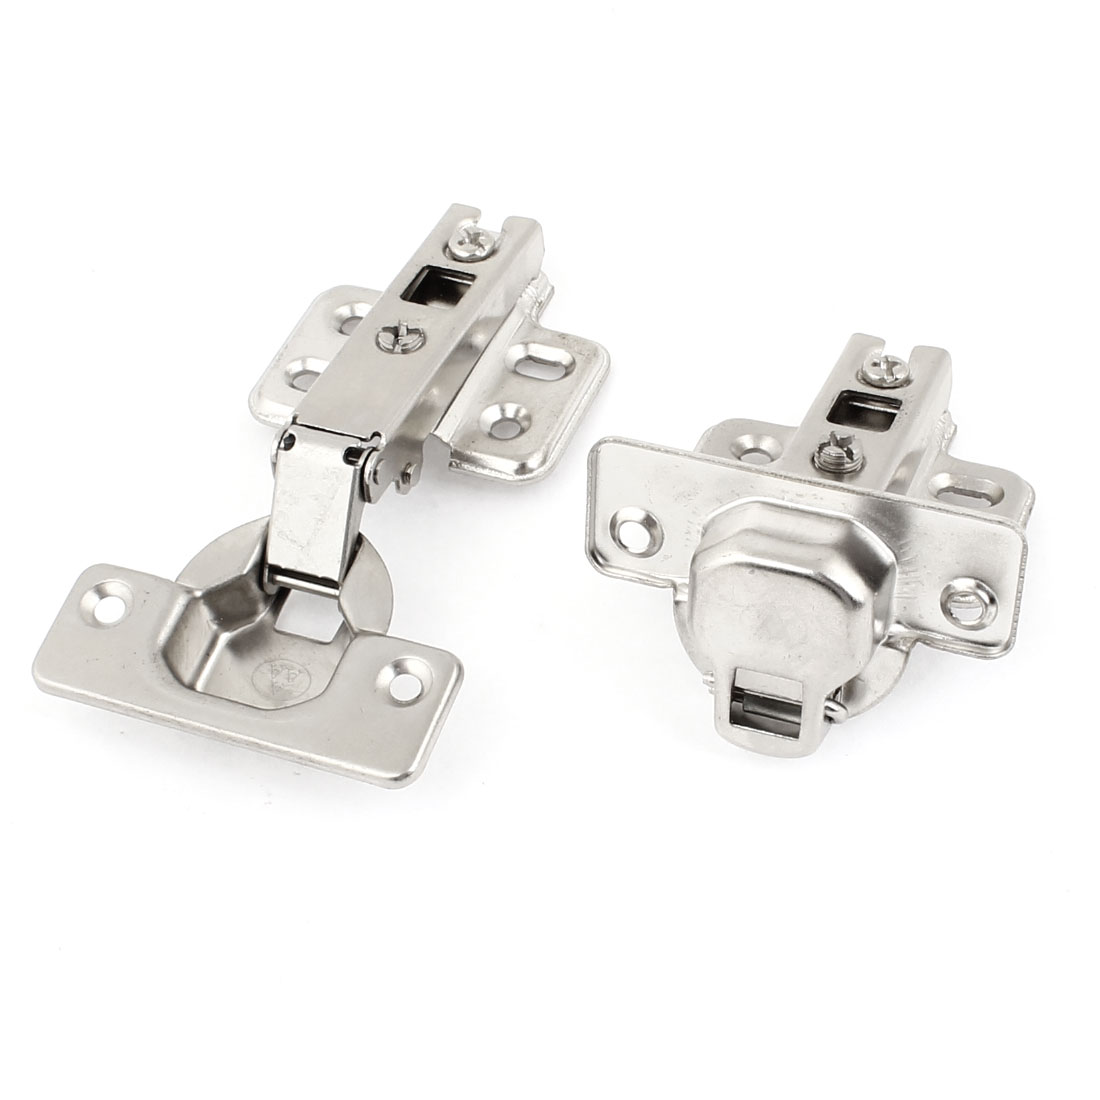 Repairing Part 4.3mm Diameter Screws Fixed Metal Cabinet Concealed Hinge 2Pcs